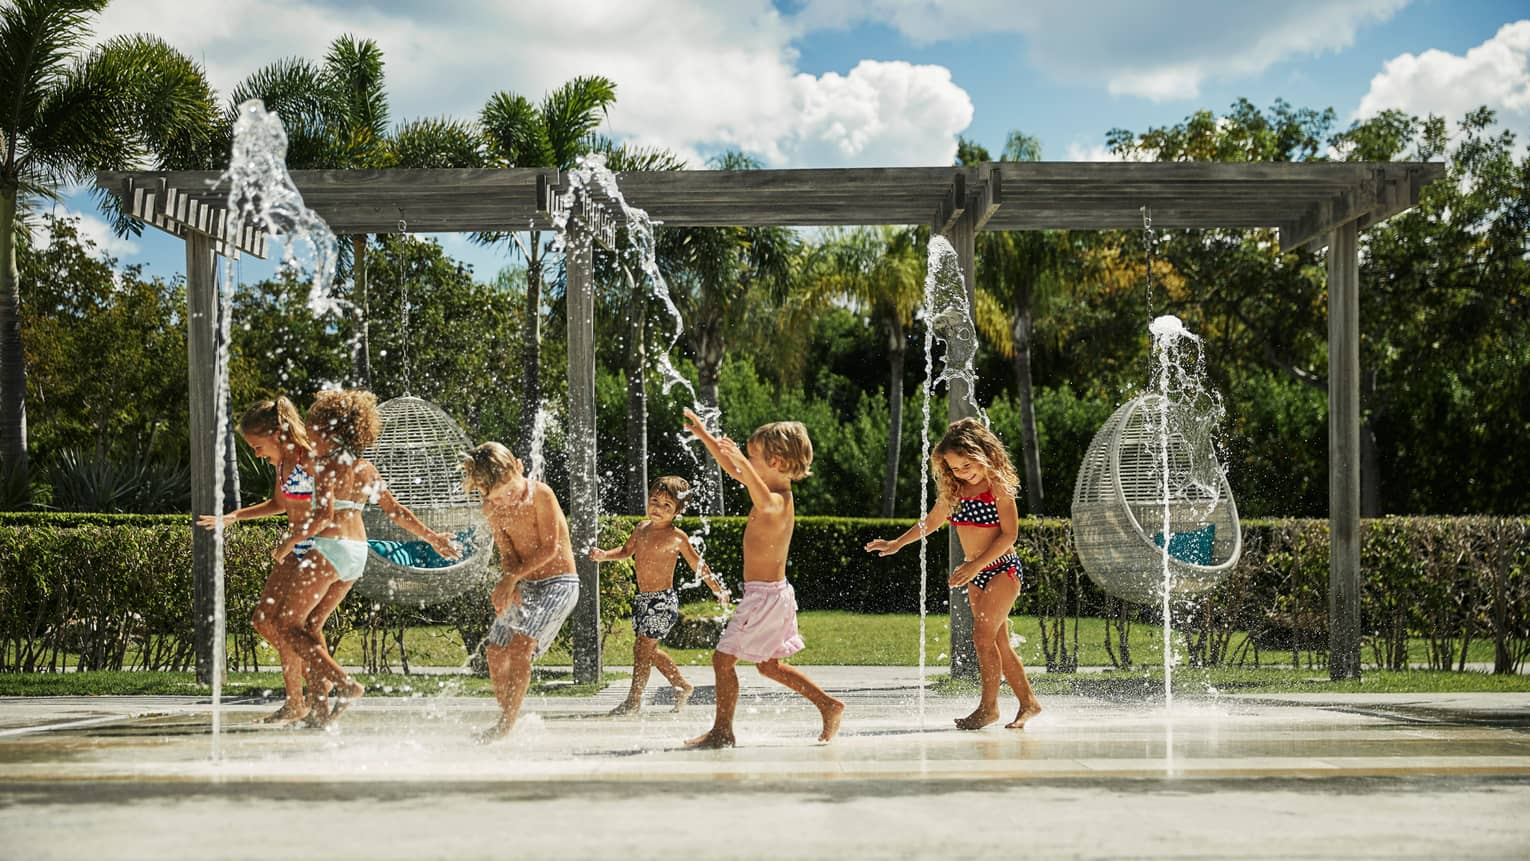 Kids in swimsuits laugh and run under outdoor splash pad, fountain